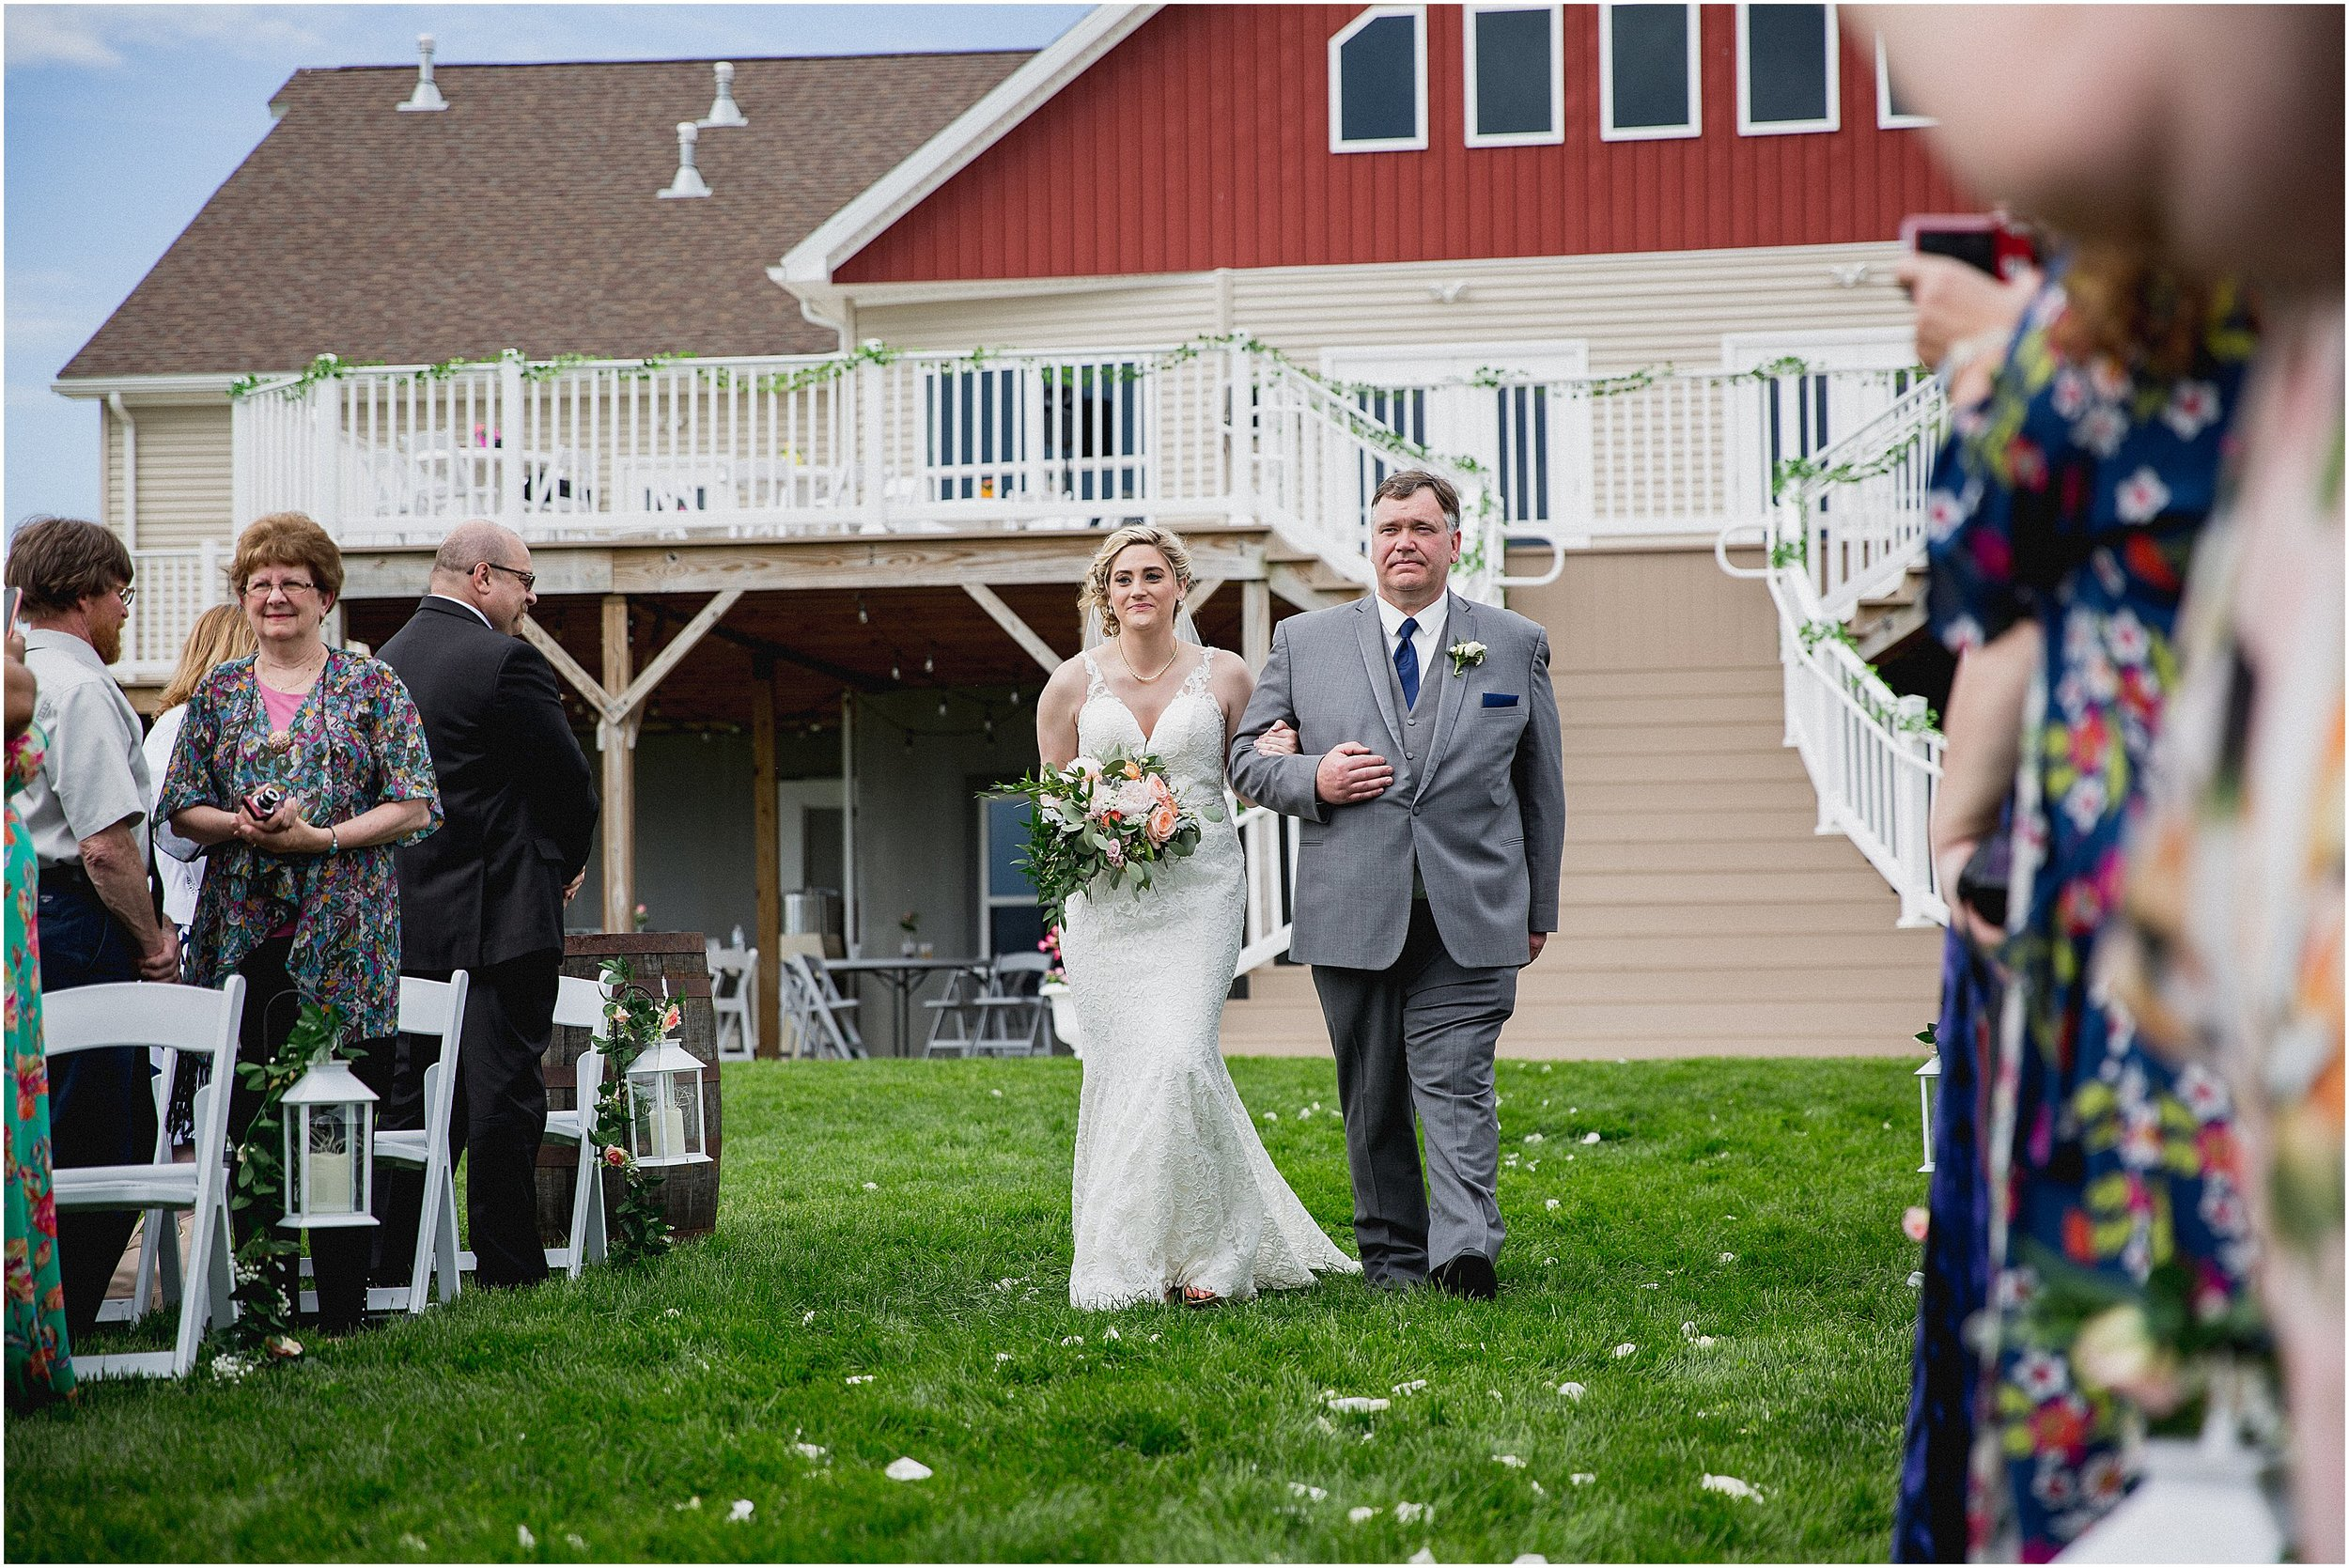 Whispering_Oaks_Wedding_Photographer_0471.jpg